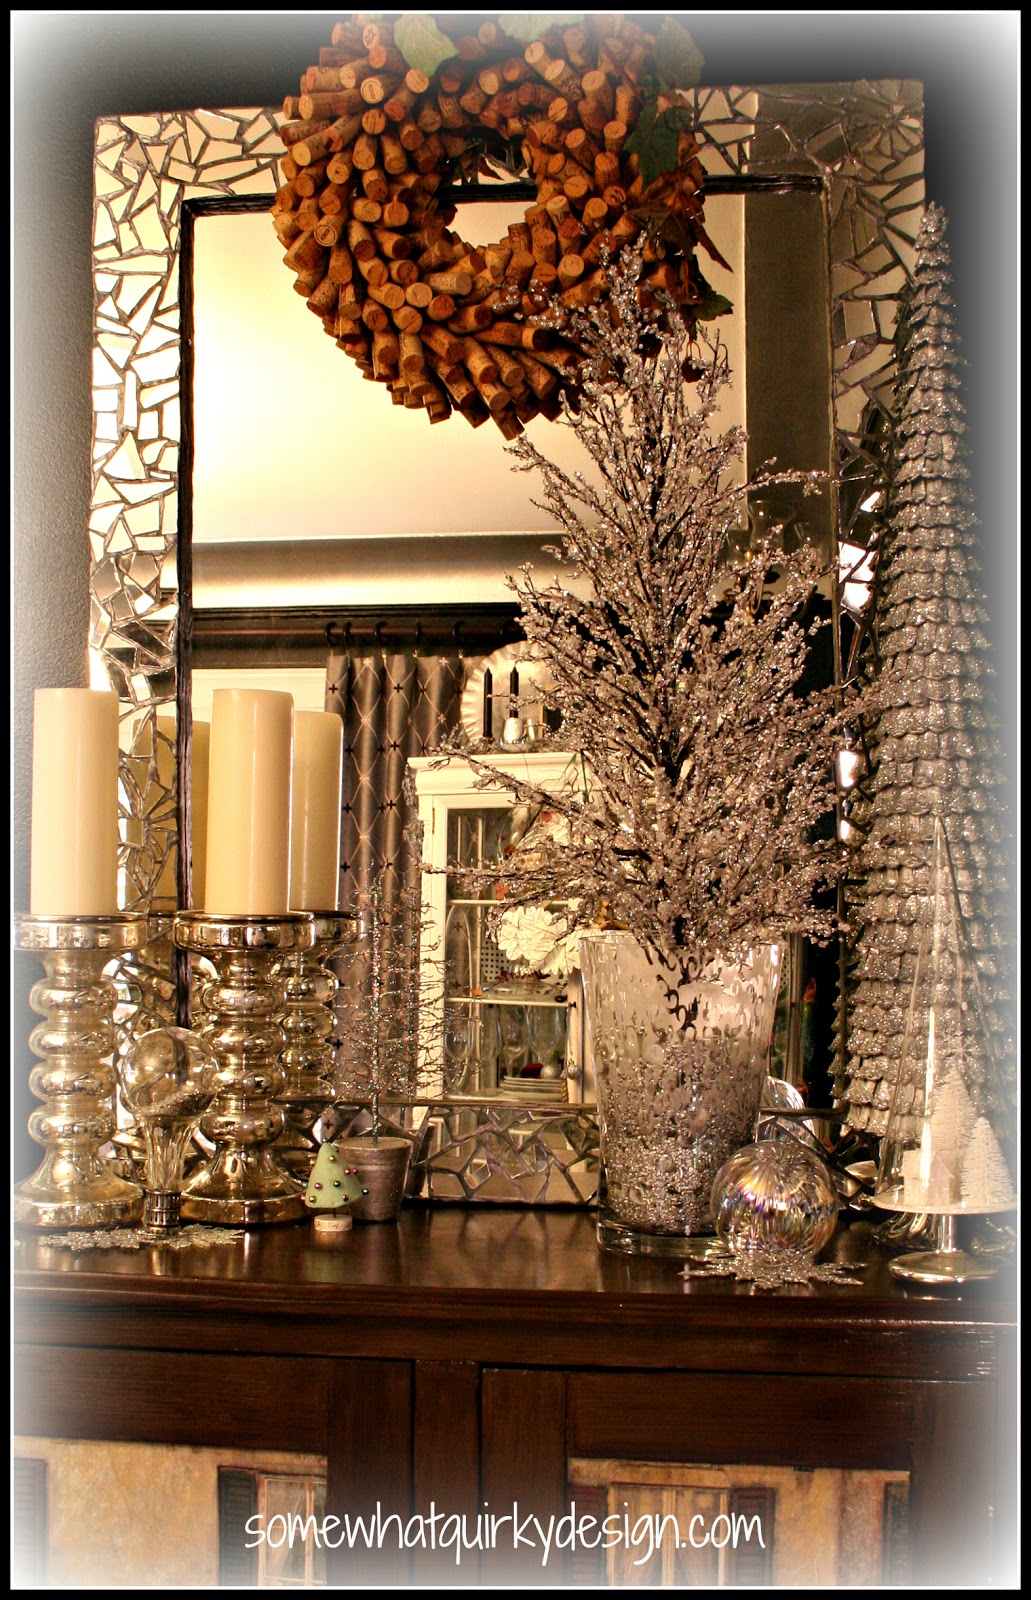 Somewhat Quirky Christmas Vignettes